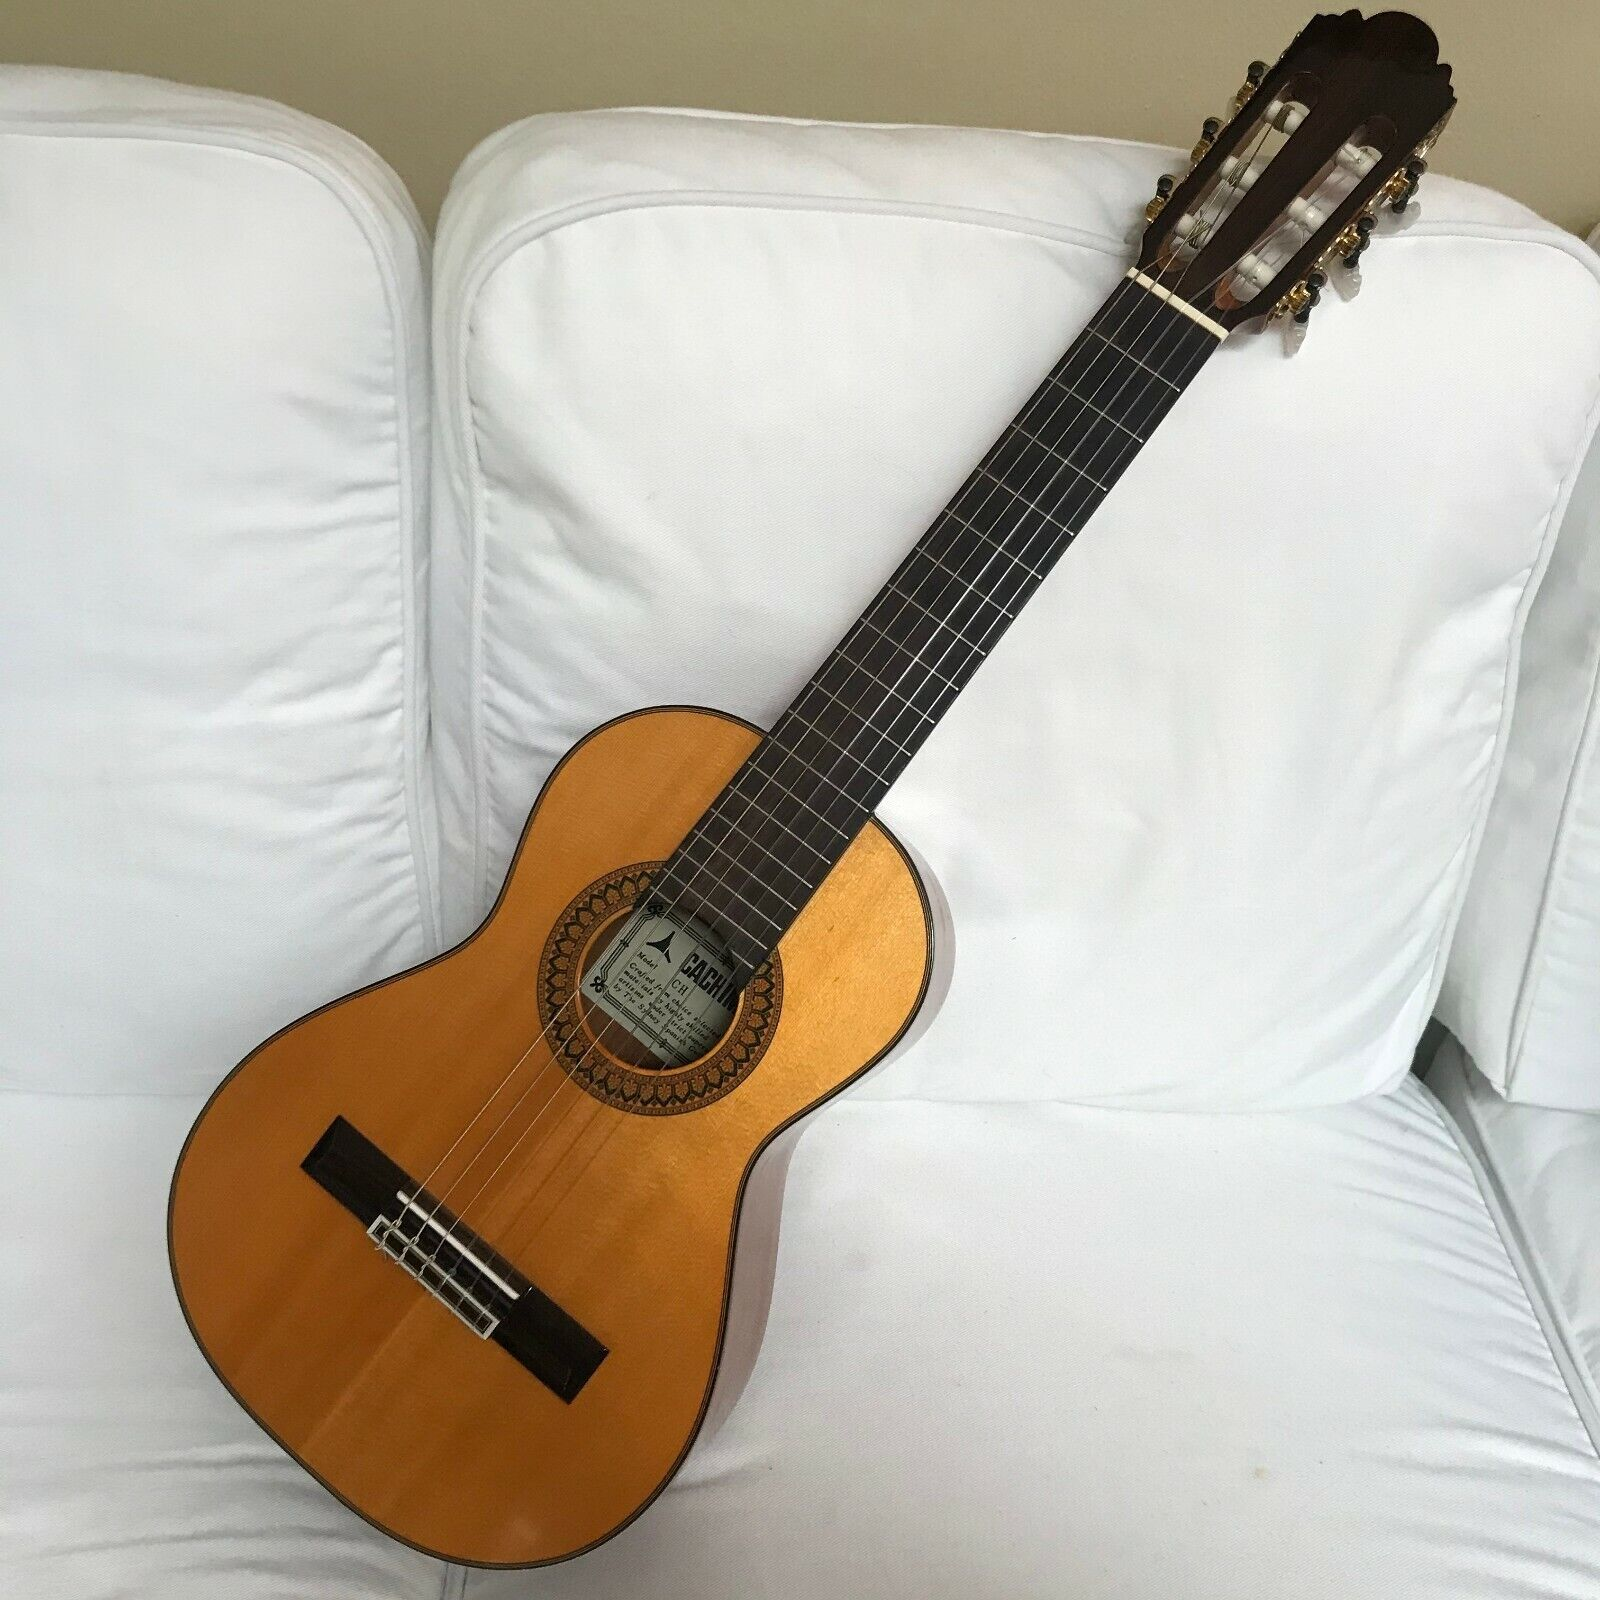 Cachimba Australian Guitar Wooden Model CH With Case - $142.00